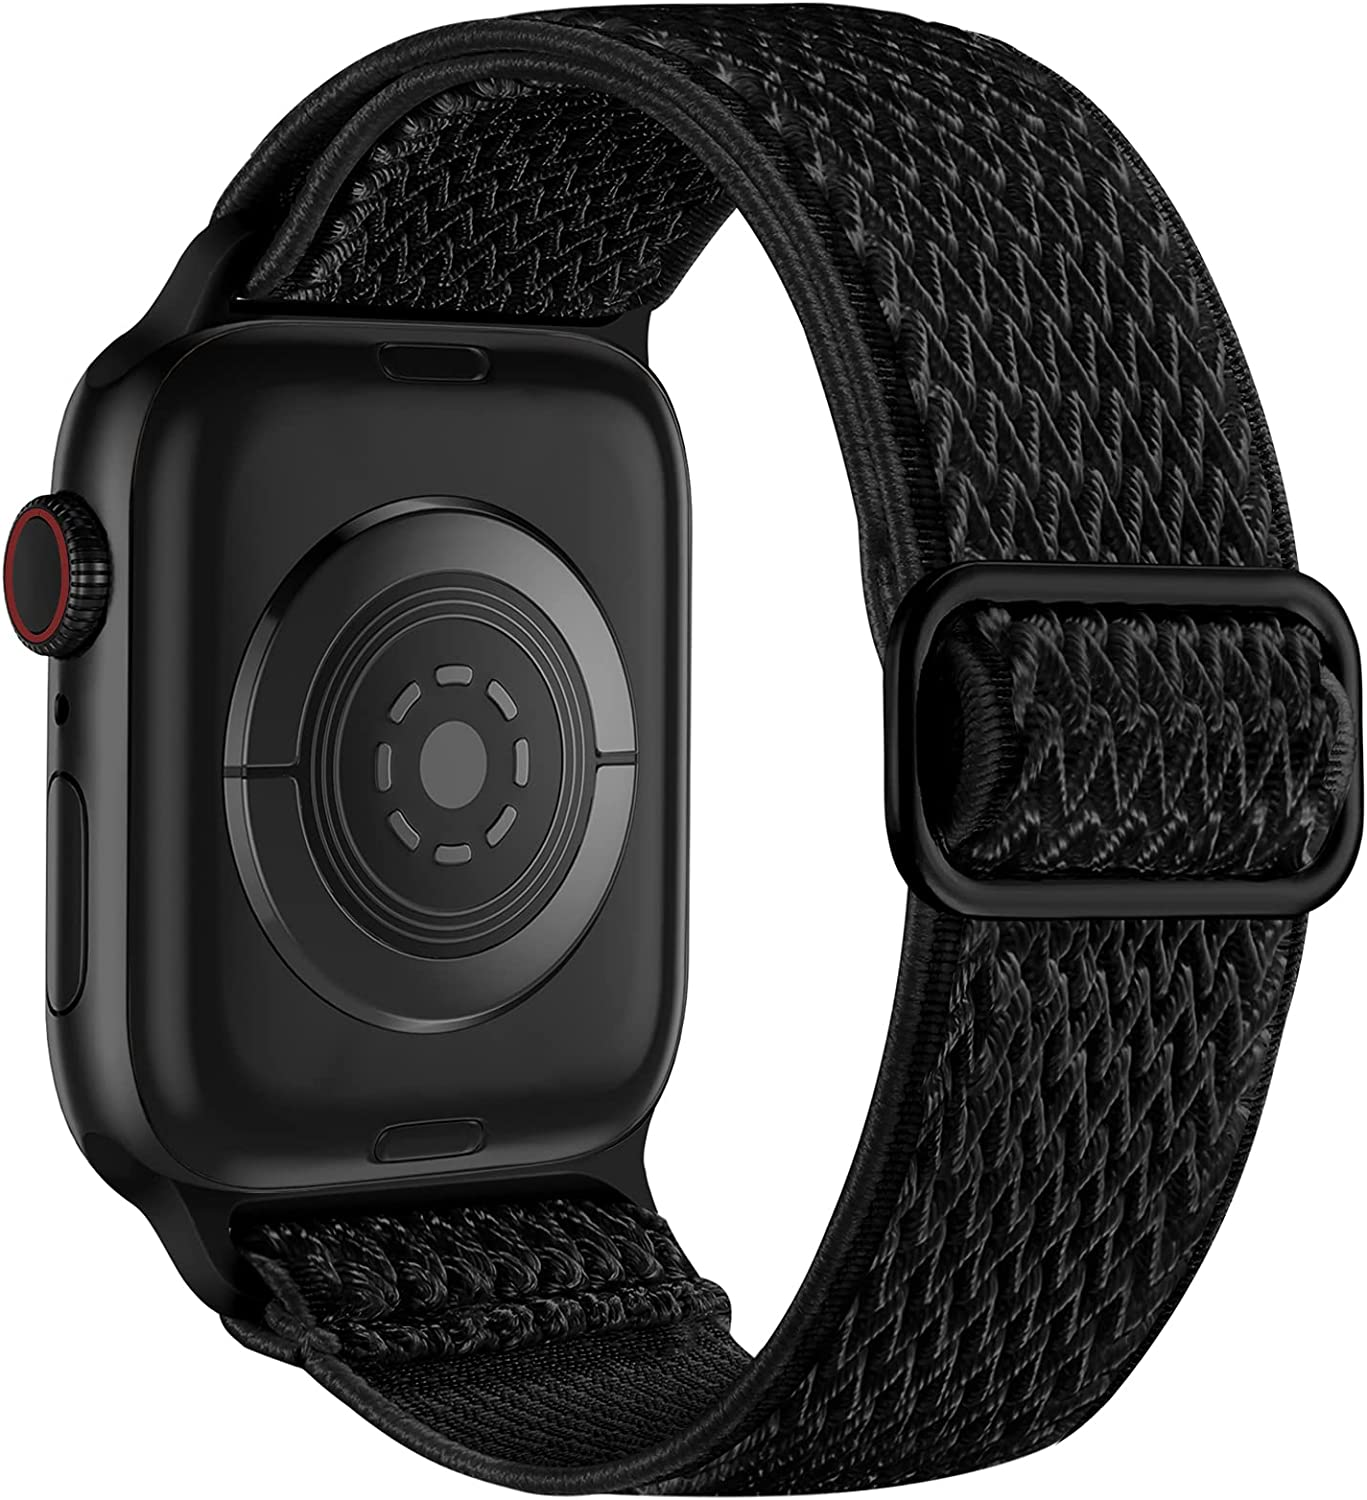 Lerobo Elastic Bands Compatible with Apple Watch 44mm 42mm 40mm 38mm for Women Men,Stretchy Solo Loop Soft Nylon Adjustable Braided Replacement Band for Apple Watch SE Series 6,Serise 5 4 3 2 1 Black